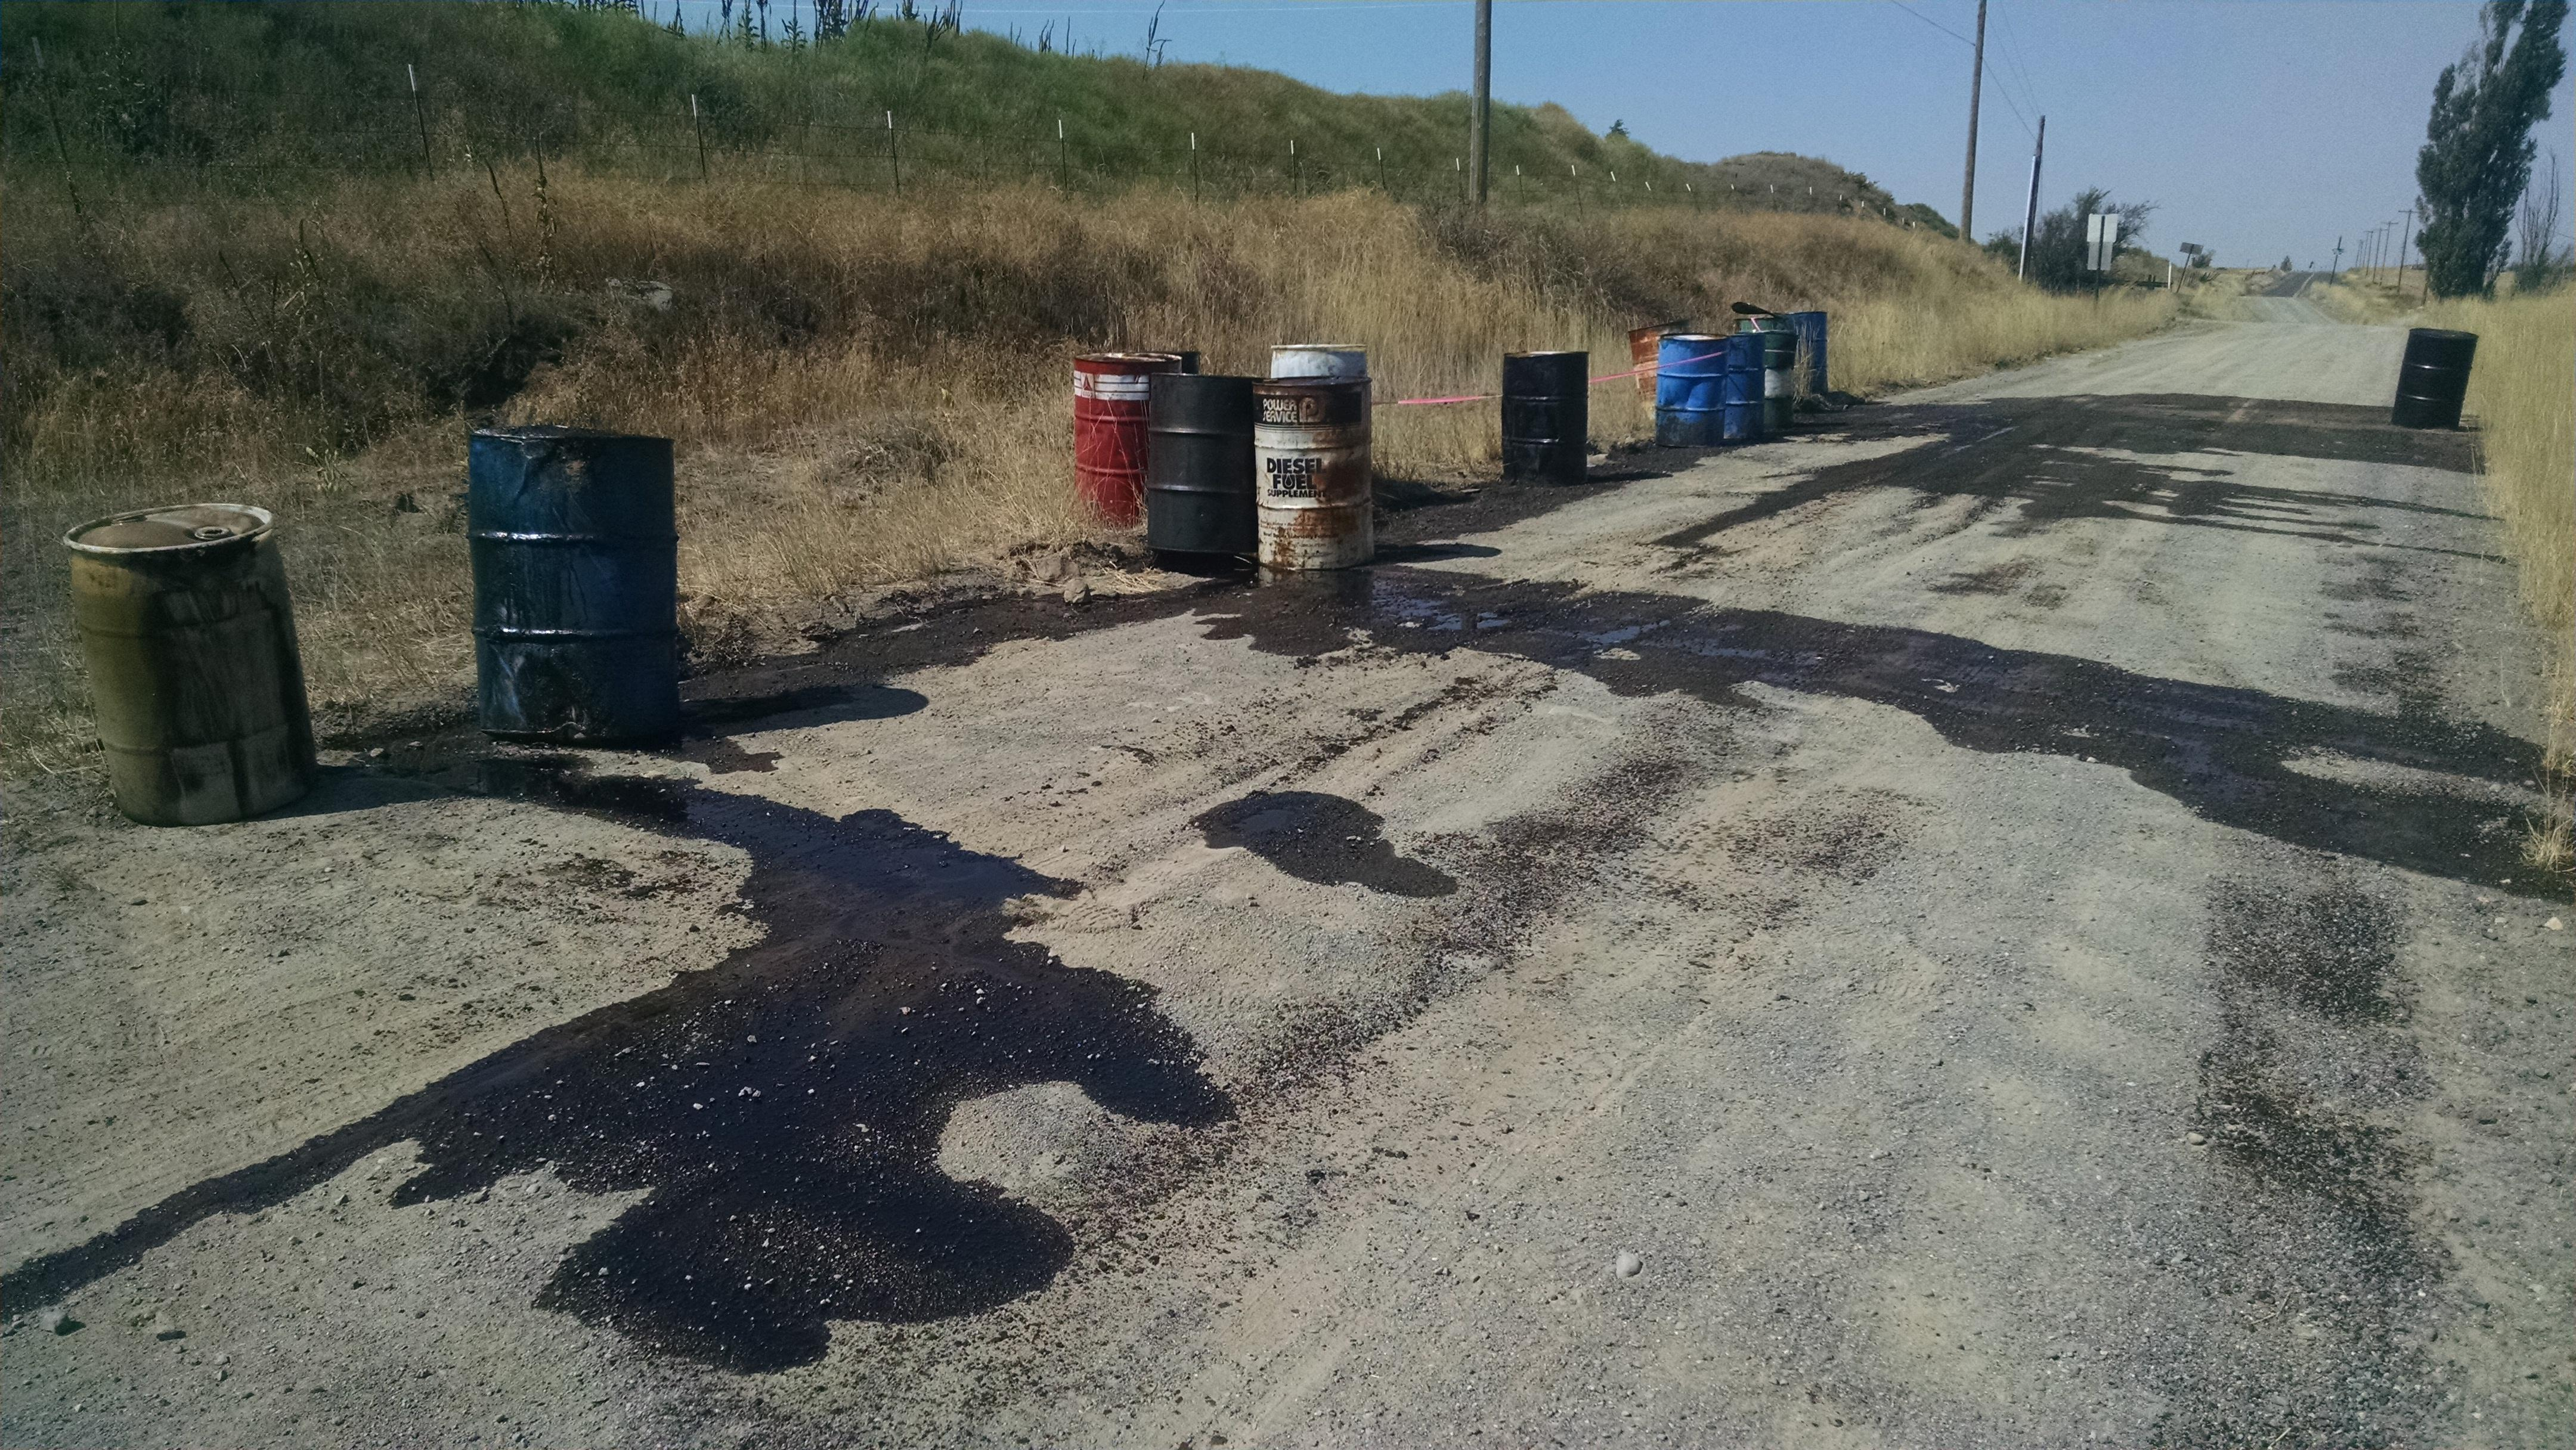 Illegal oil dumping costly for taxpayers spokane county for Motor oil by the barrel